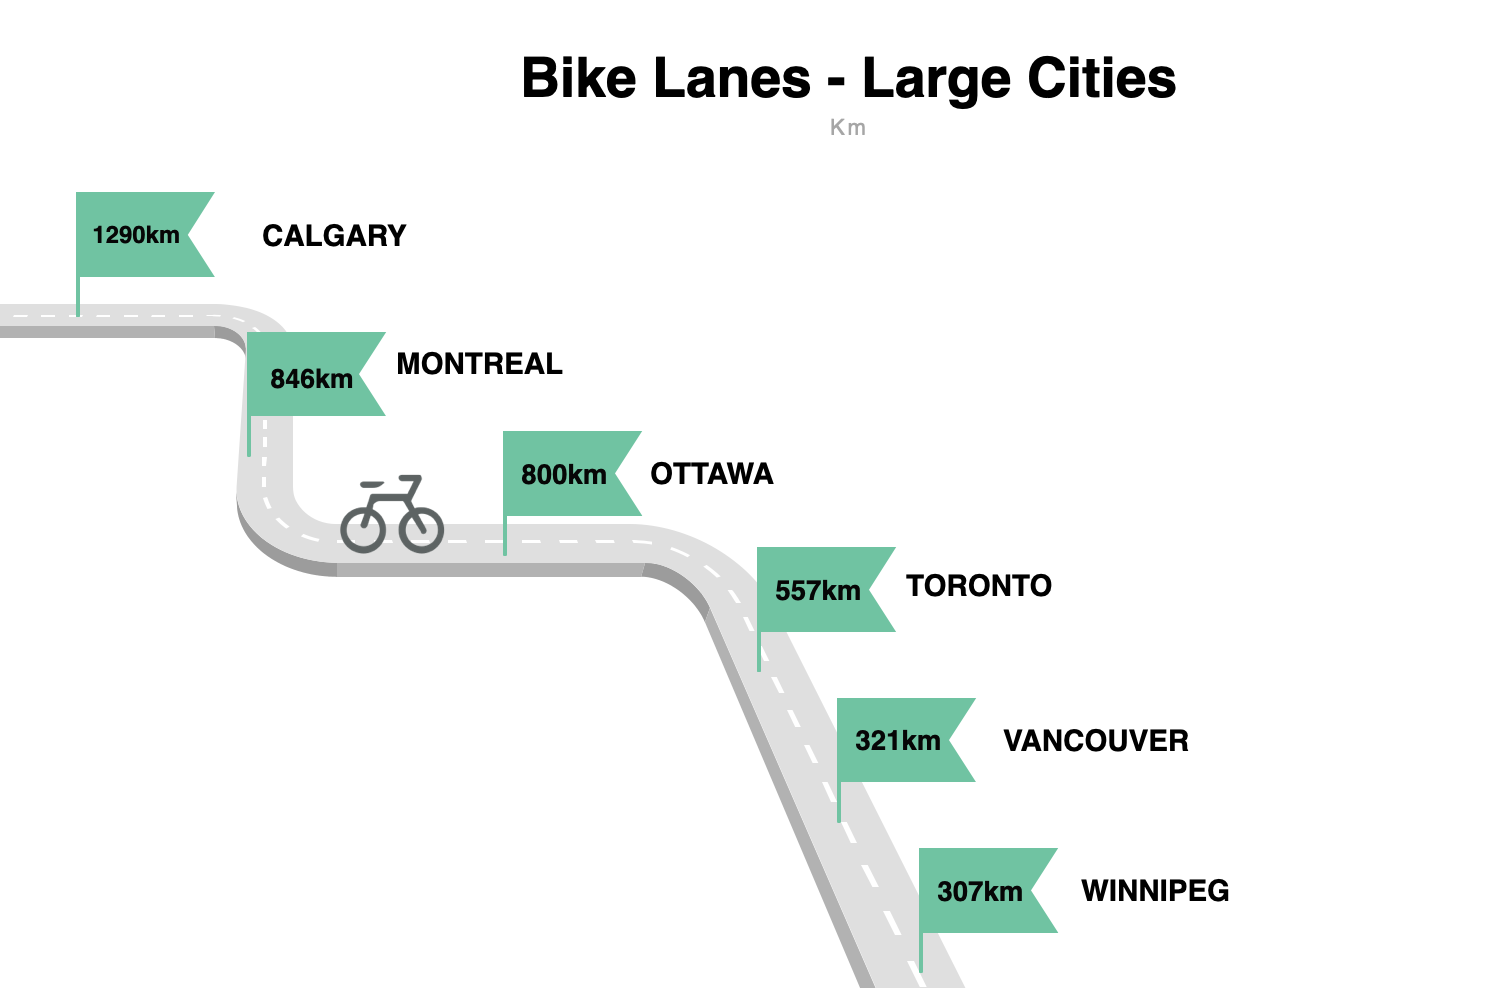 Data for Bike Lanes in Large Cities - The National Climate League Standings